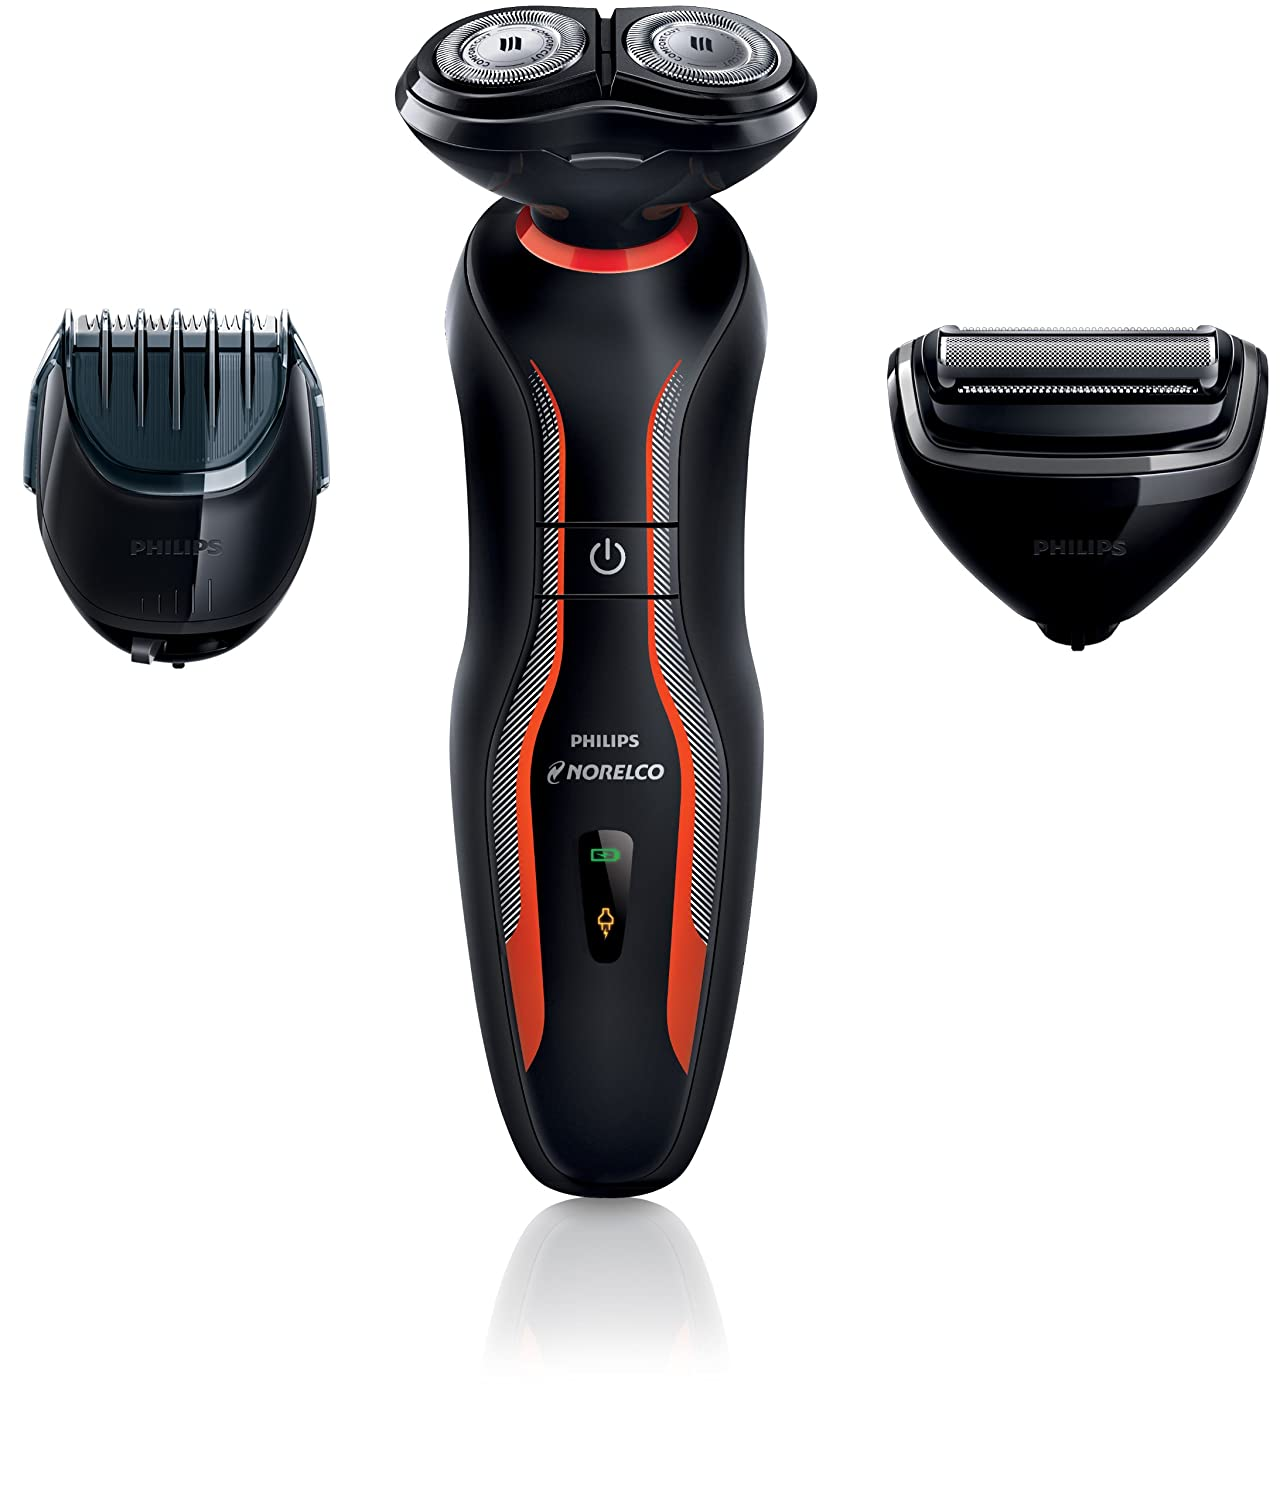 Philips Norelco YS524/41 Click and Style Shave Toolkit